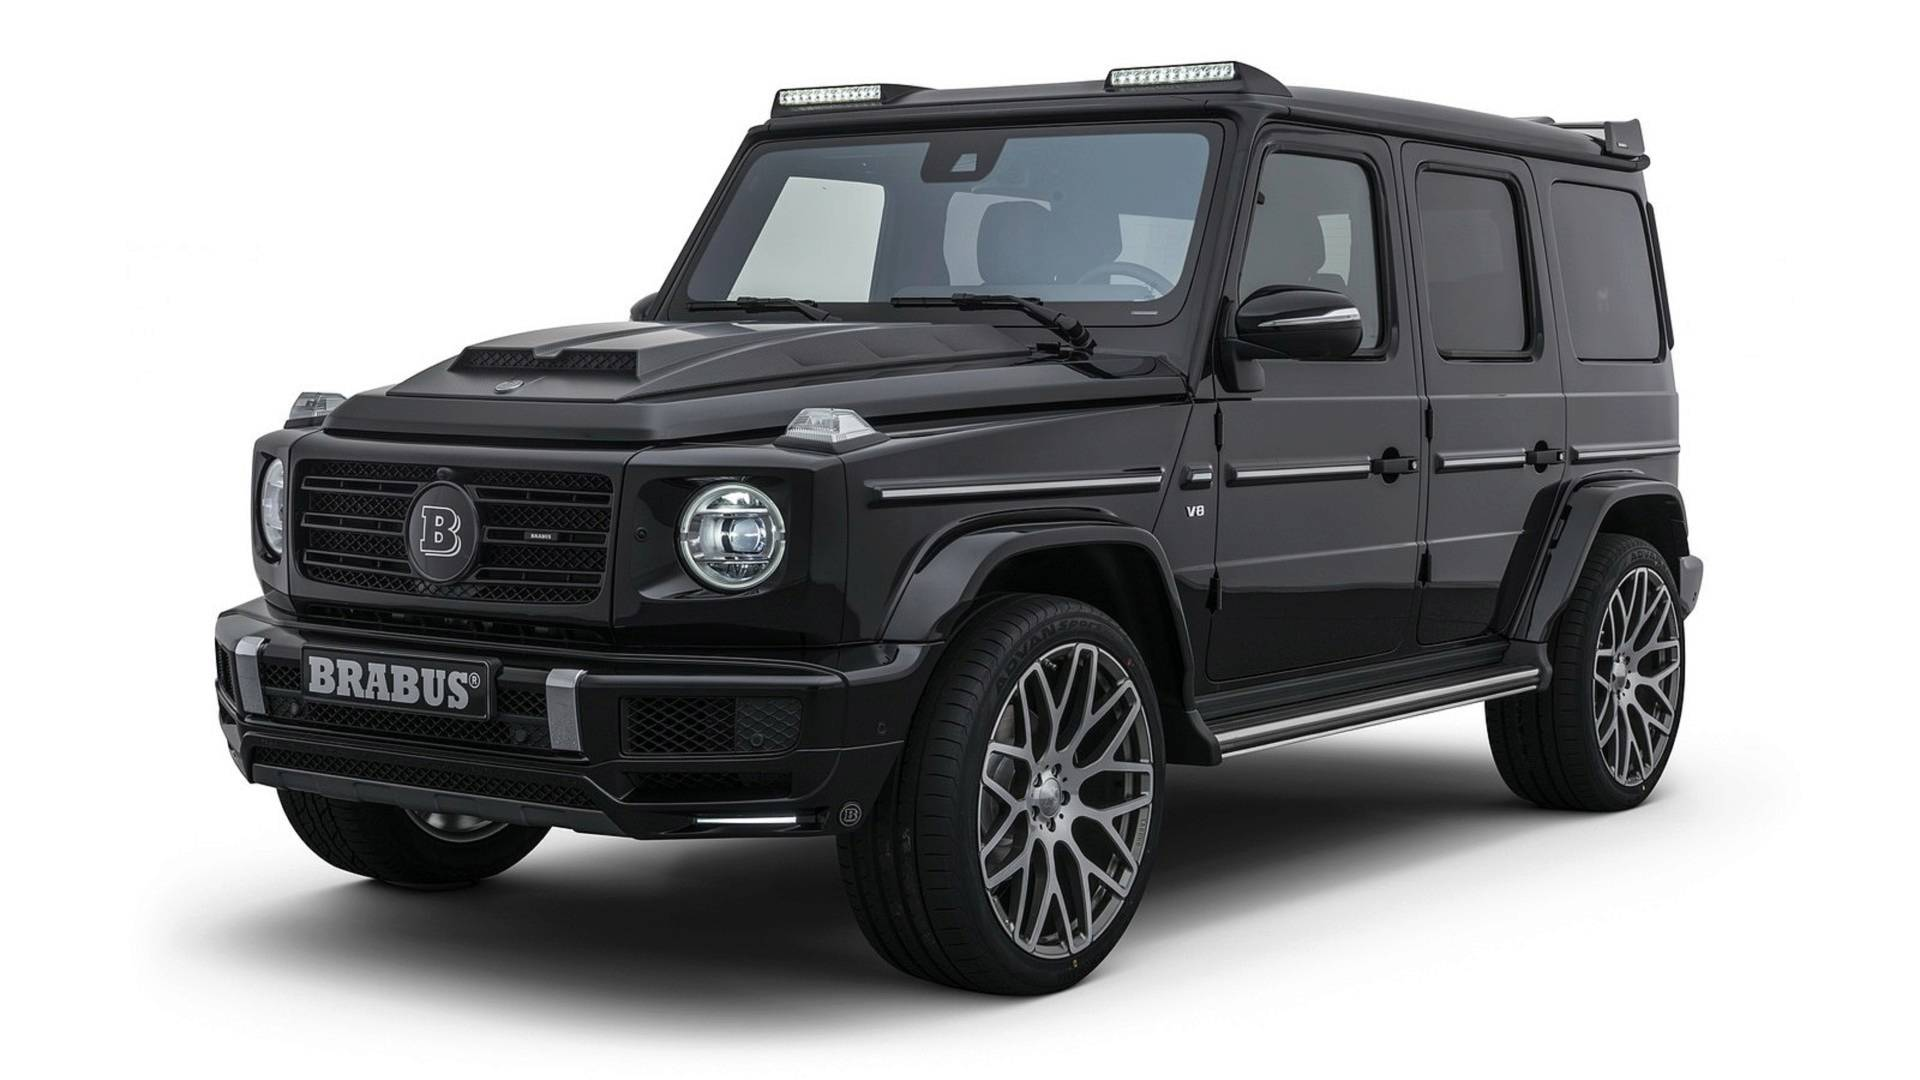 Brabus modifica novo Mercedes-Benz Classe G